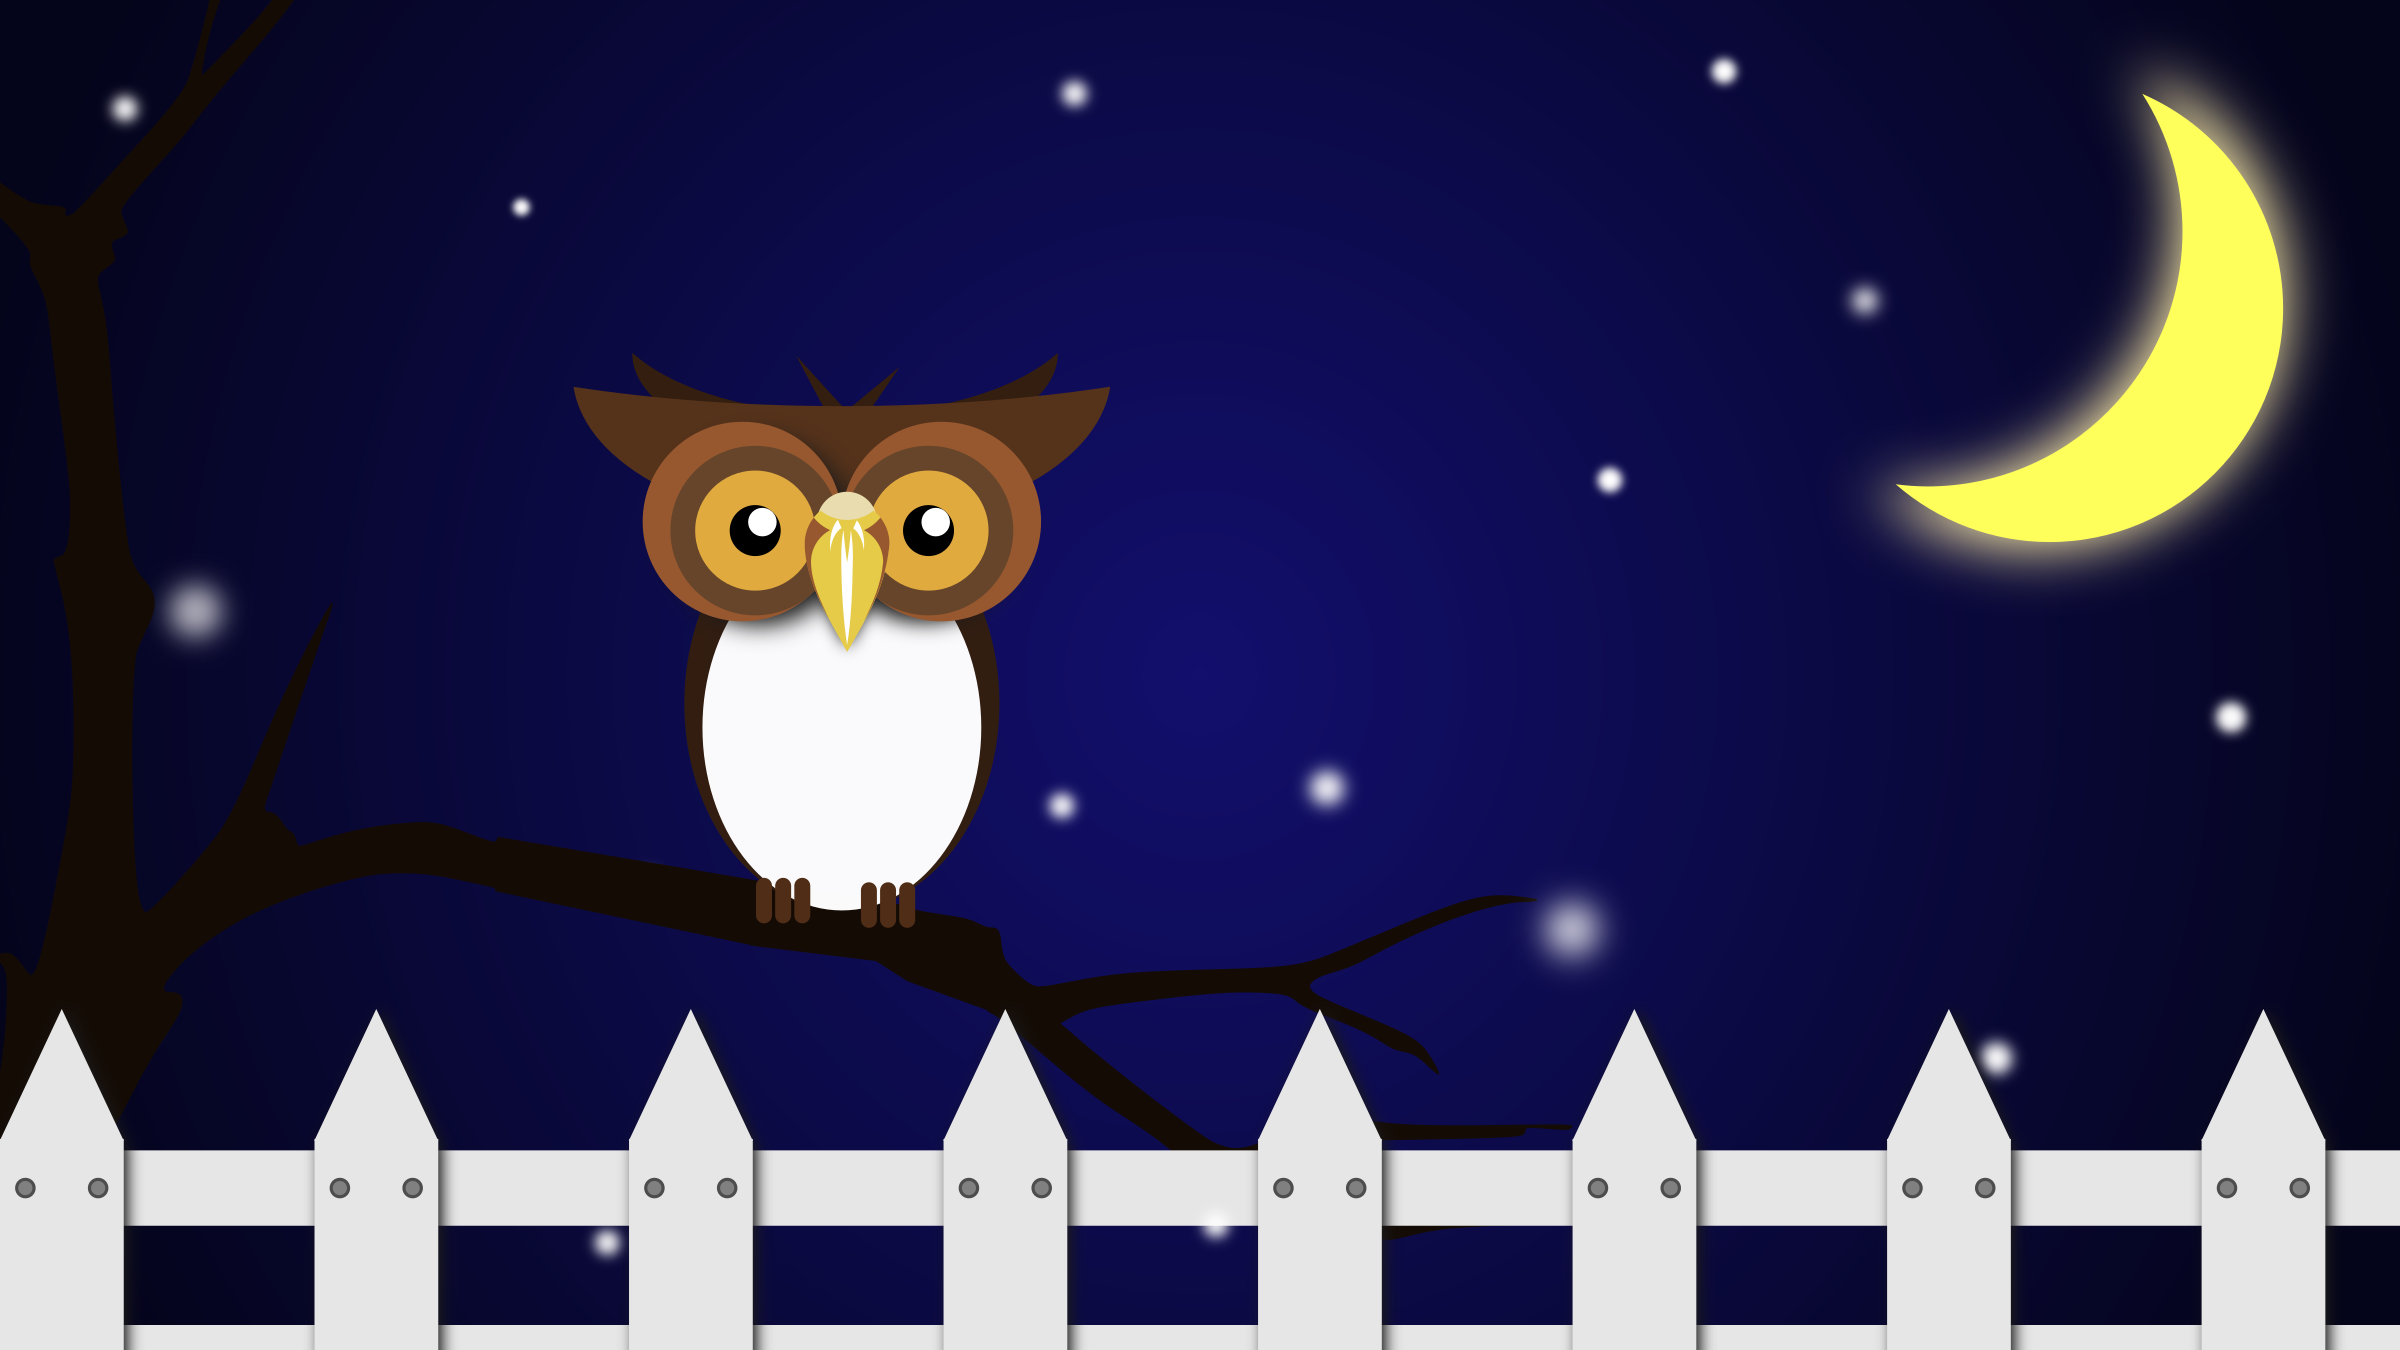 Night Owl by Avasz